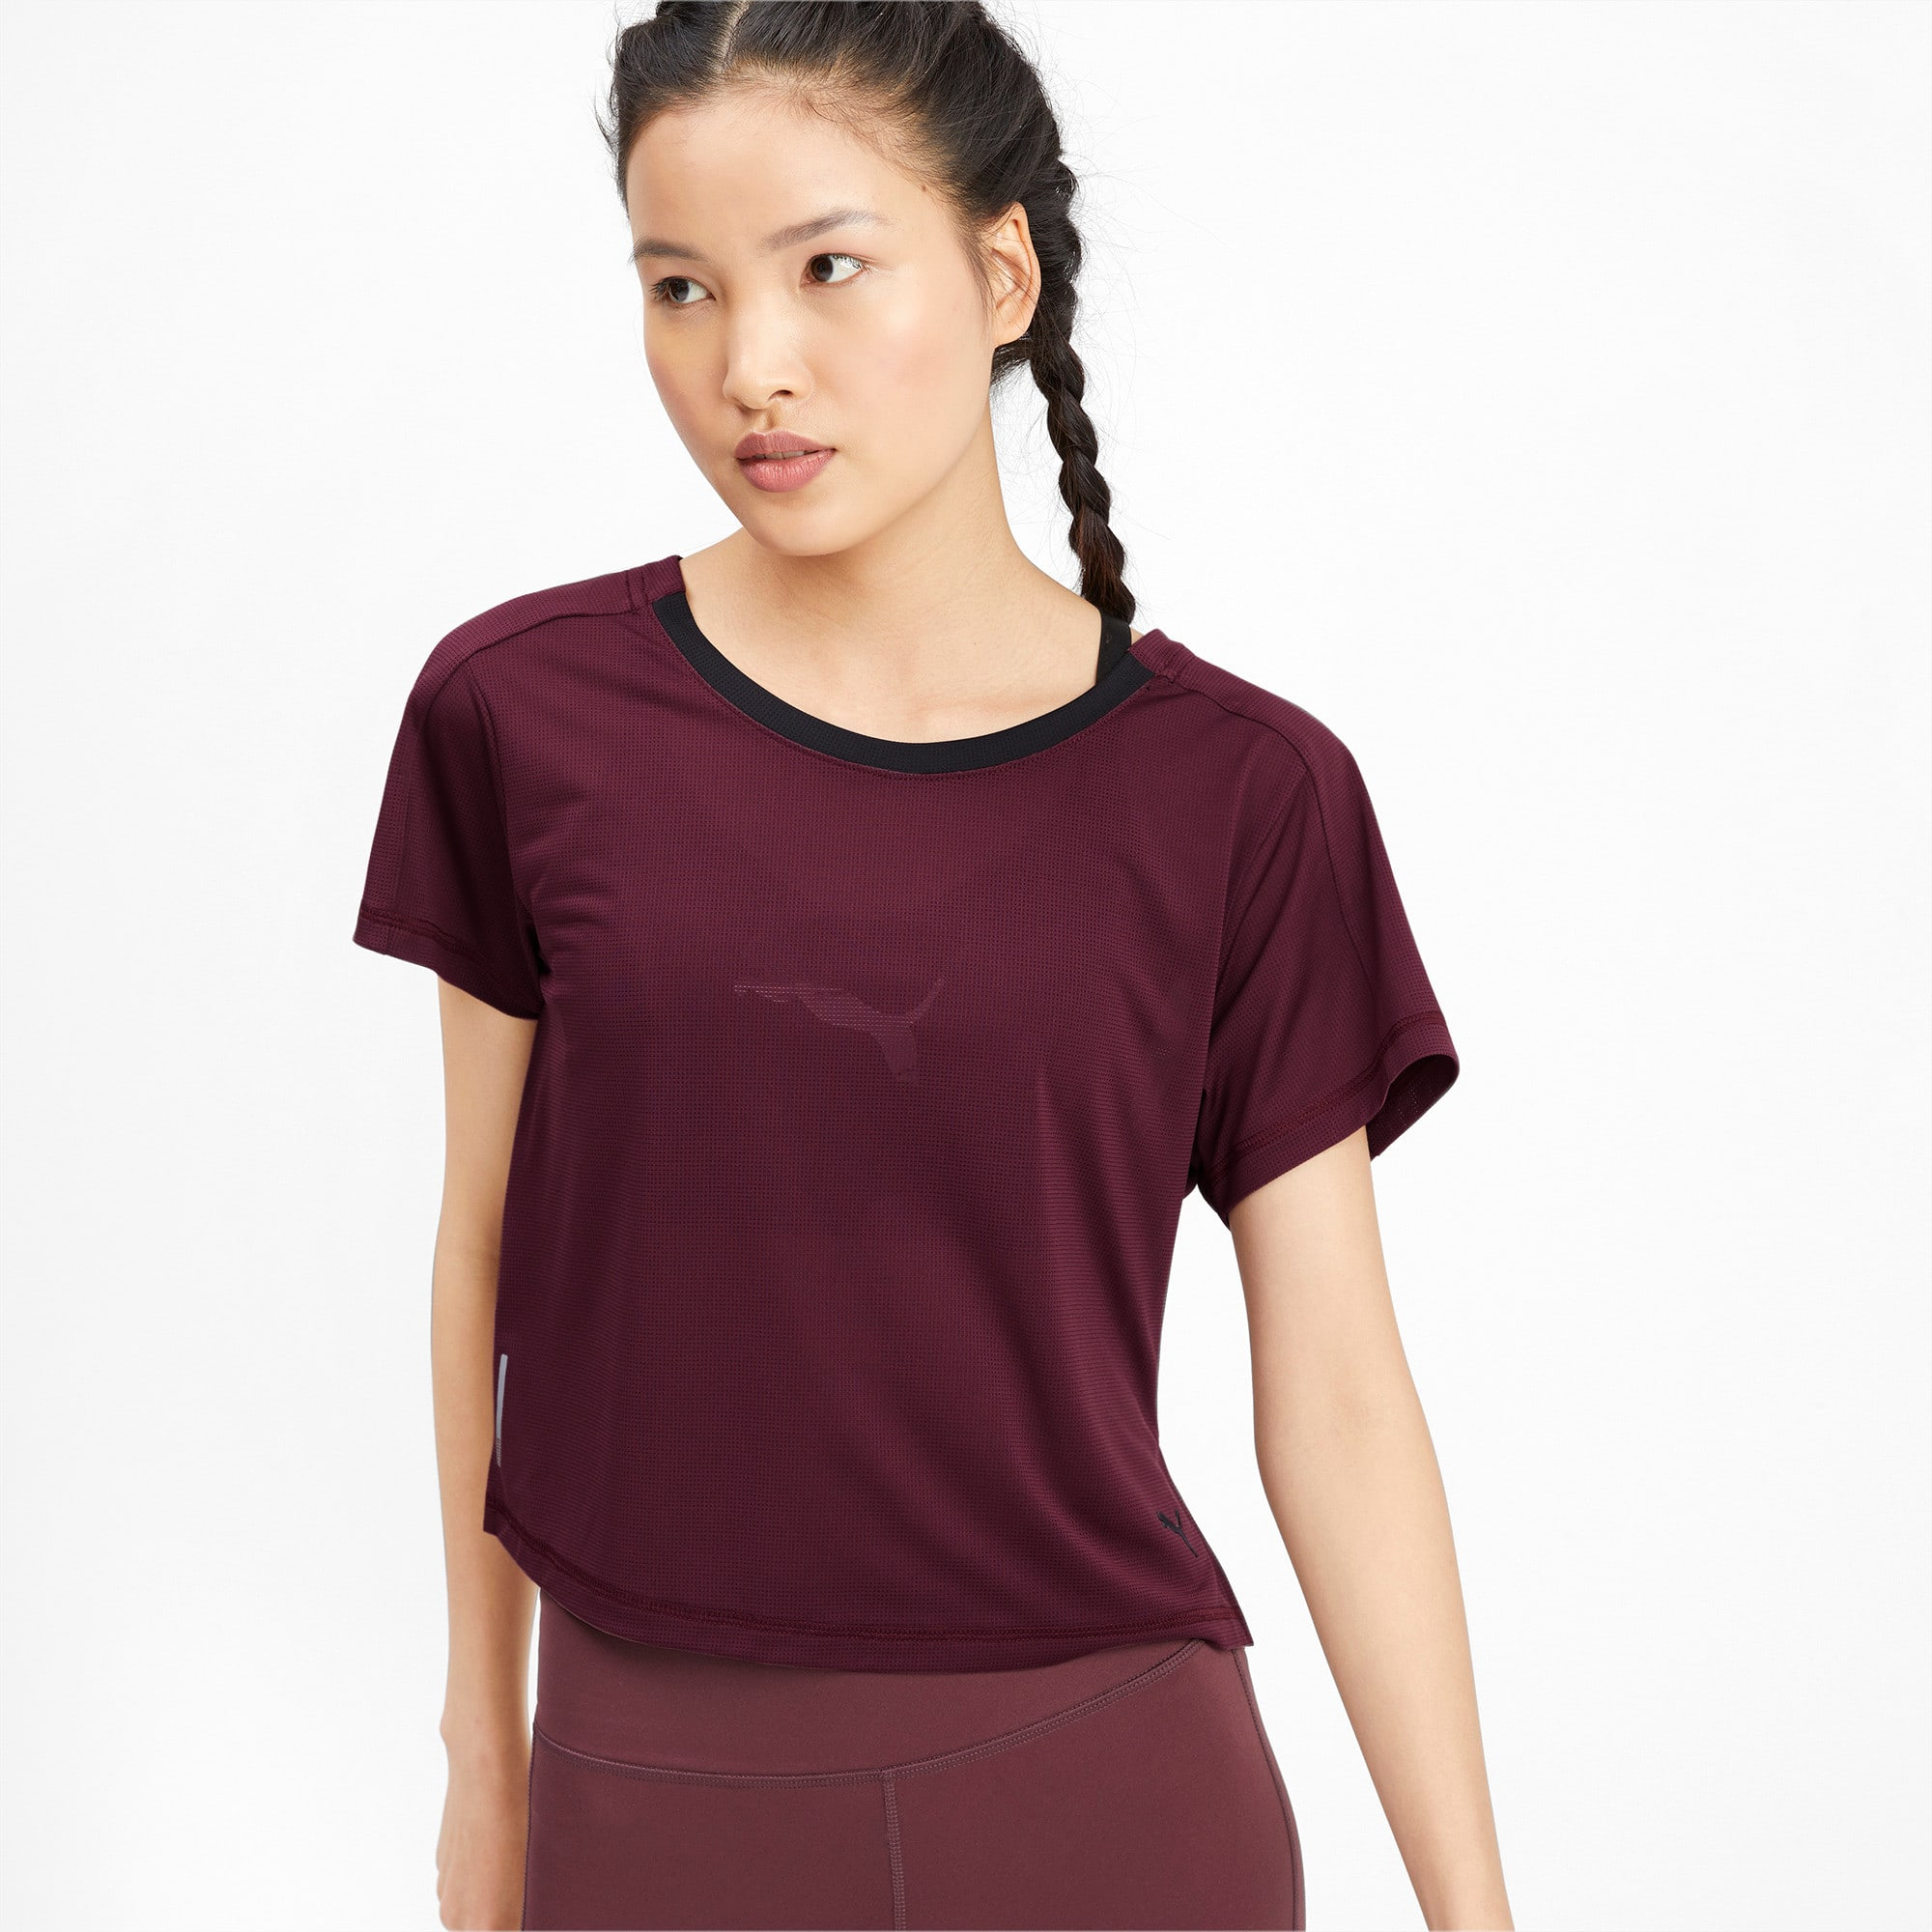 Thumbnail 1 of Cropped Short Sleeve Women's Training Tee, Vineyard Wine, medium